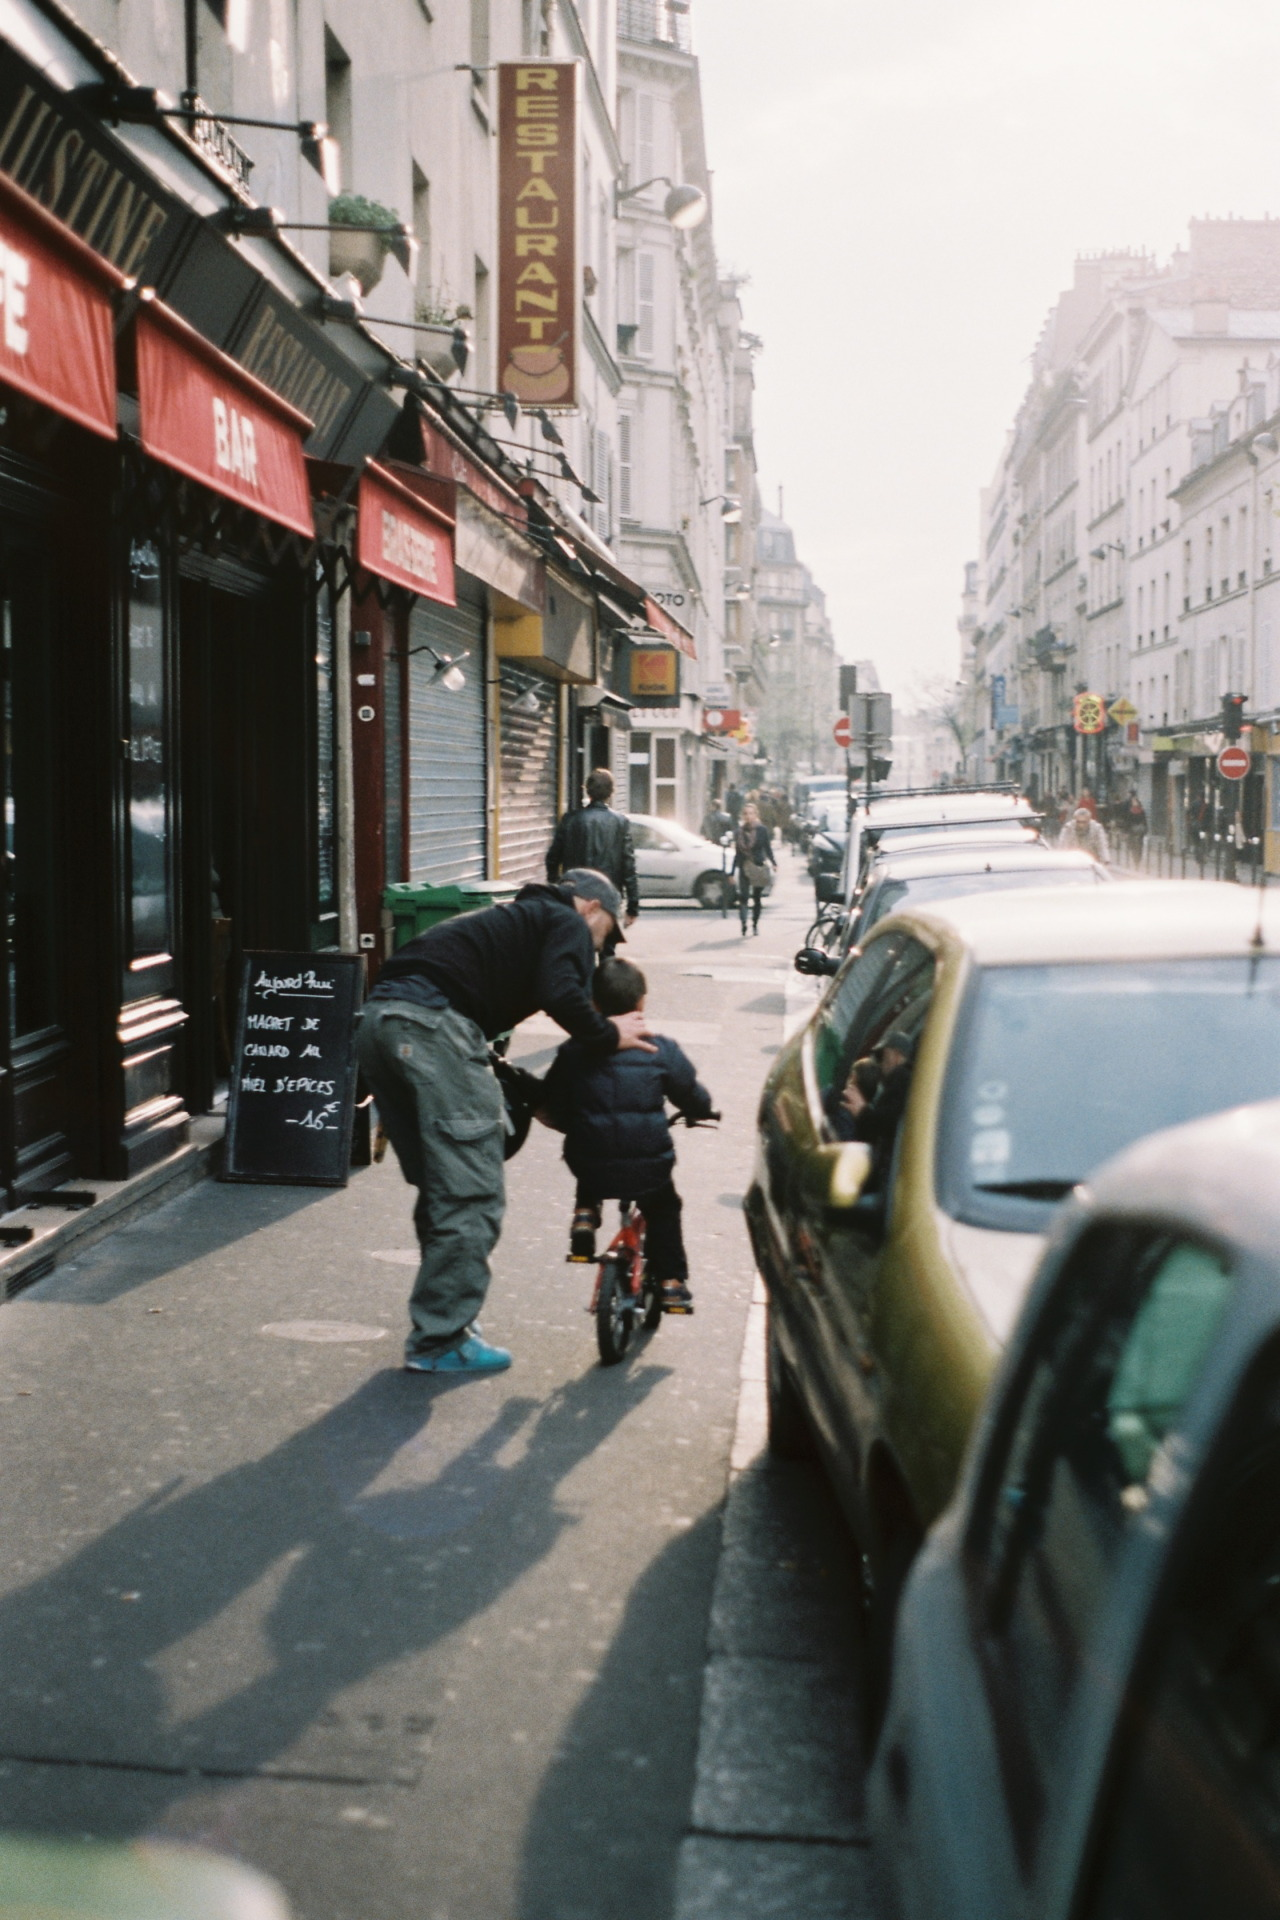 Learning to ride a bike on Rue Oberkampf. Paris, March 2011